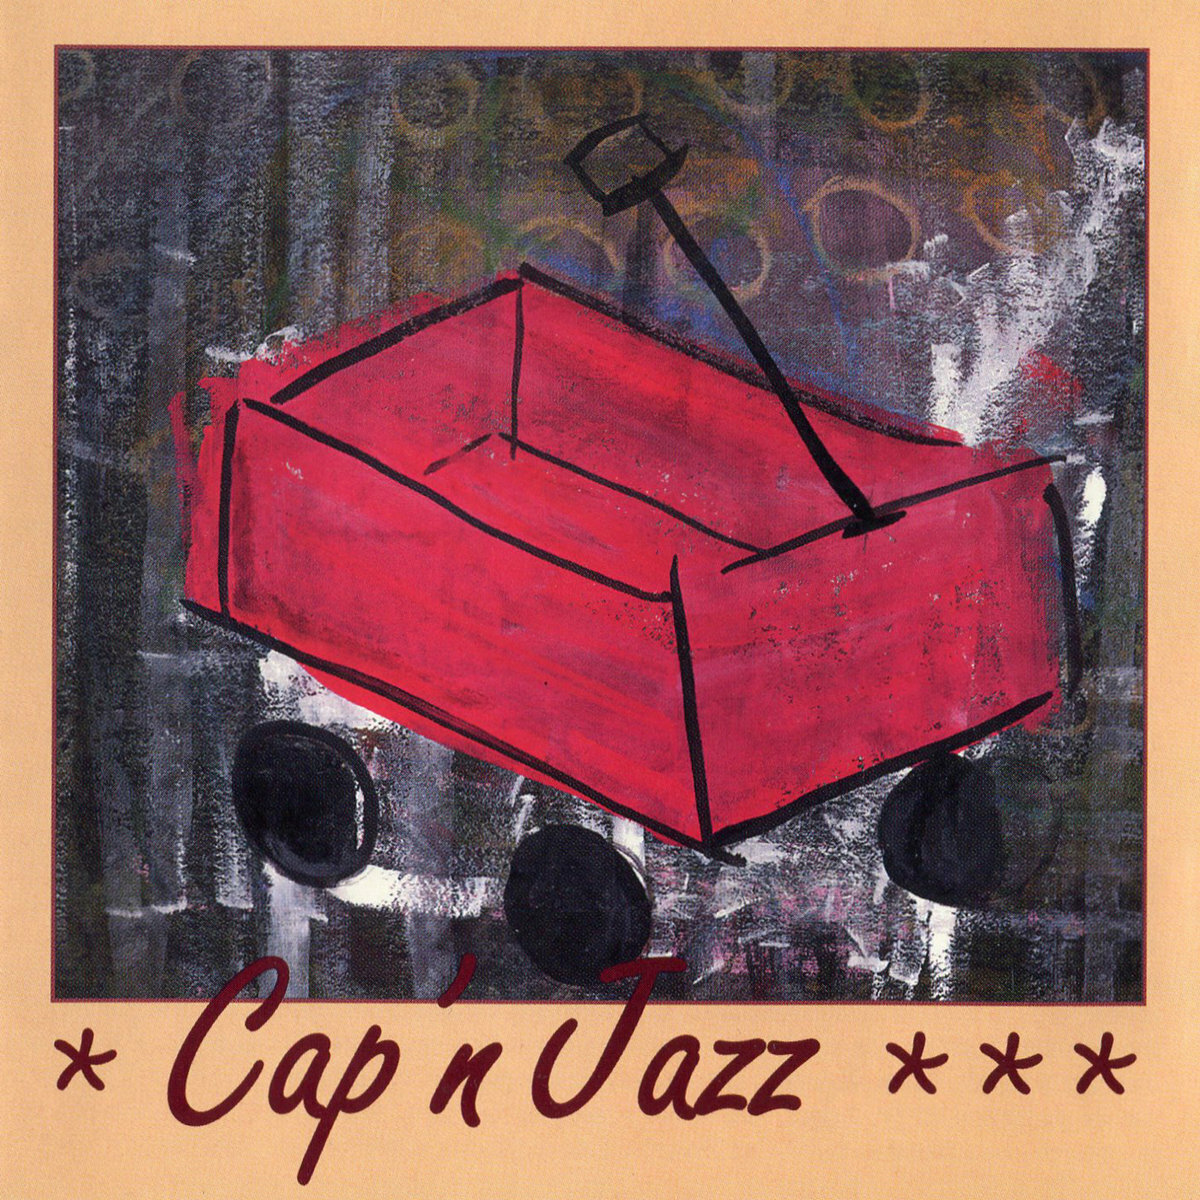 Cap'n Jazz / Burritos, Inspiration Point, Fork Balloon Sports, Cards in the Spokes, Automatic Biographies, Kites, Kung Fu, Trophies, Banana Peels We've Slipped on, and Egg Shells We've Tippy Toed Over(Cassette)